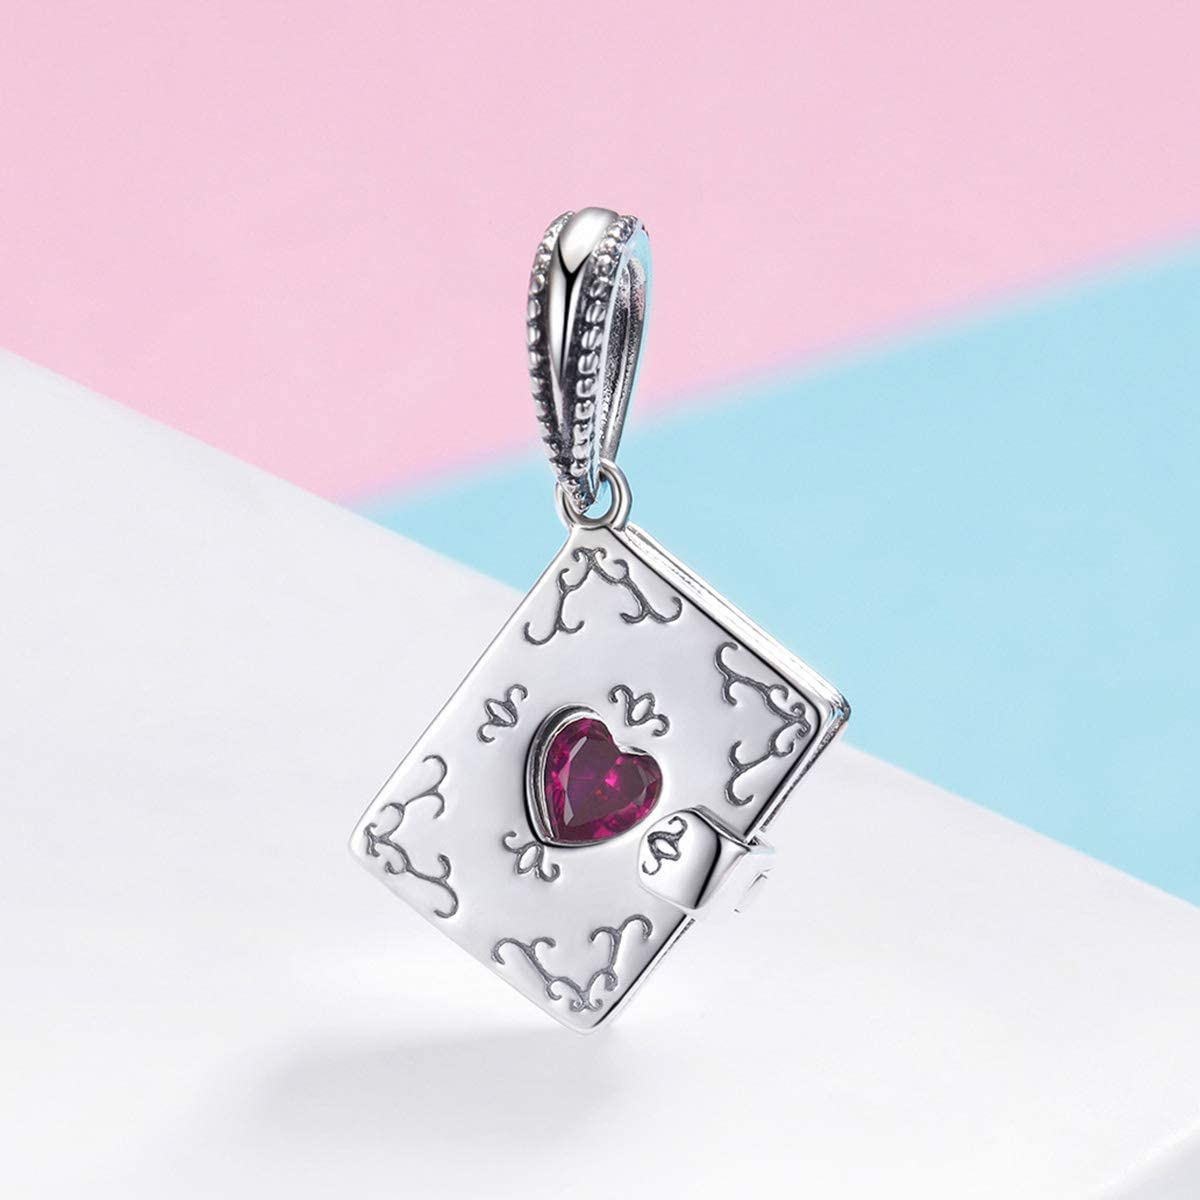 The Kiss Forever Love Note Book Heart Dangle 925 Sterling Silver Bead Fits European Charm Bracelet